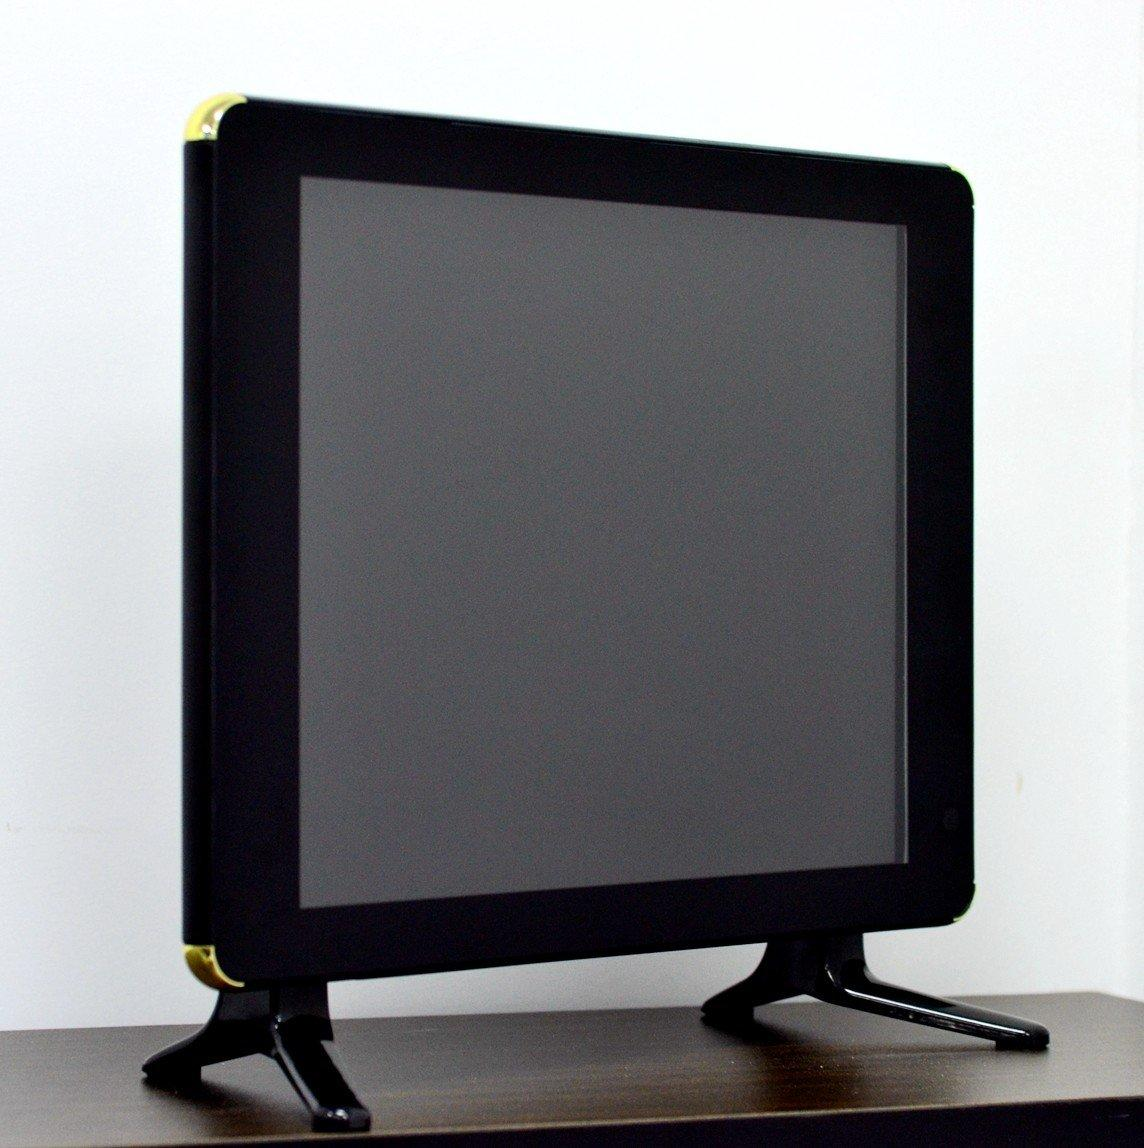 Xinyao LCD 17 inch tv for sale new style for lcd screen-3